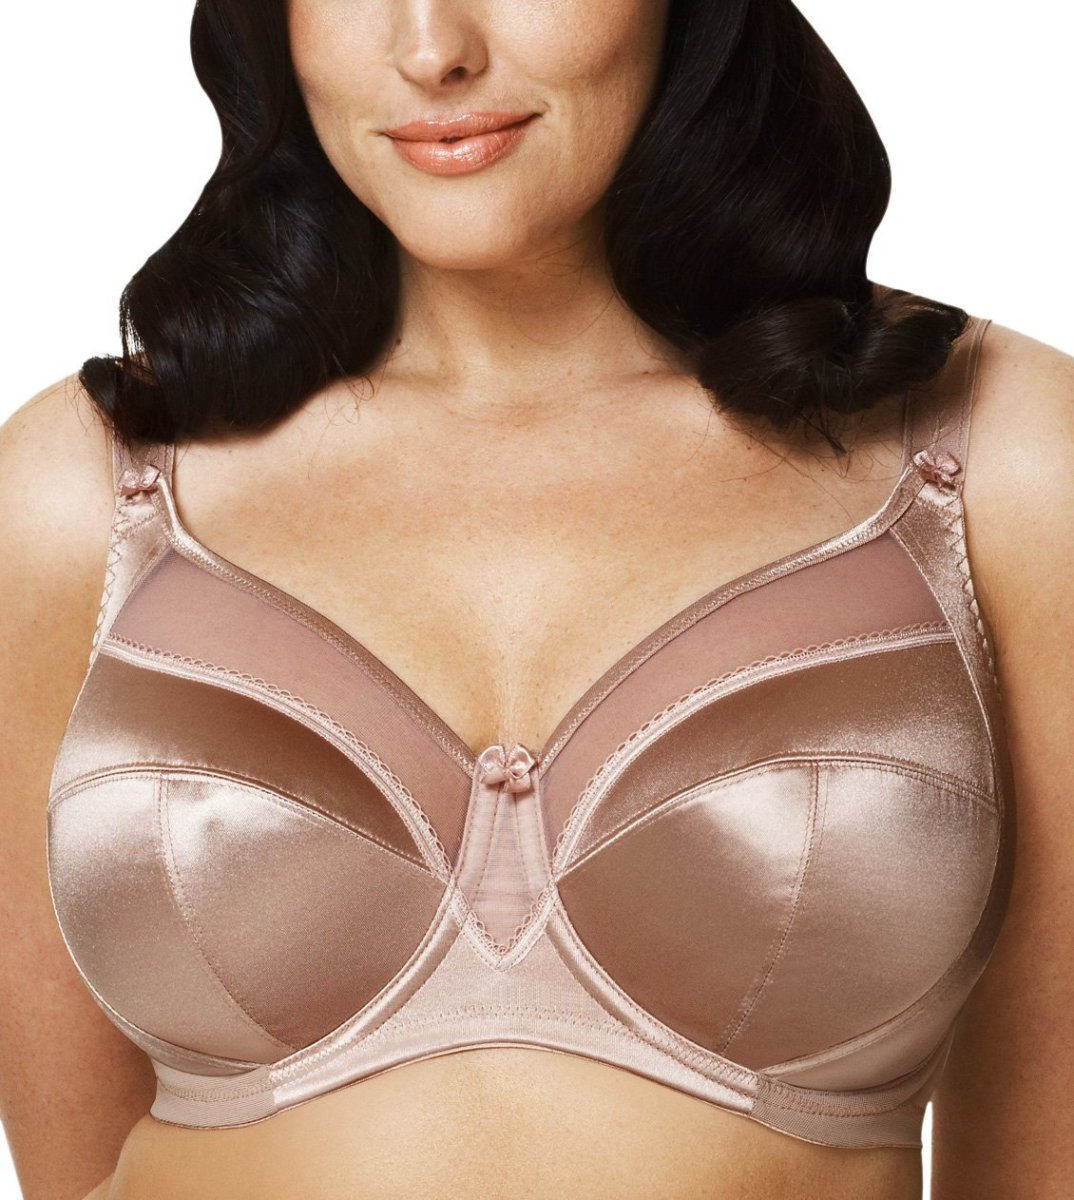 Best Bras for Large Breasts:  Top Three Bras for Full Figured Women